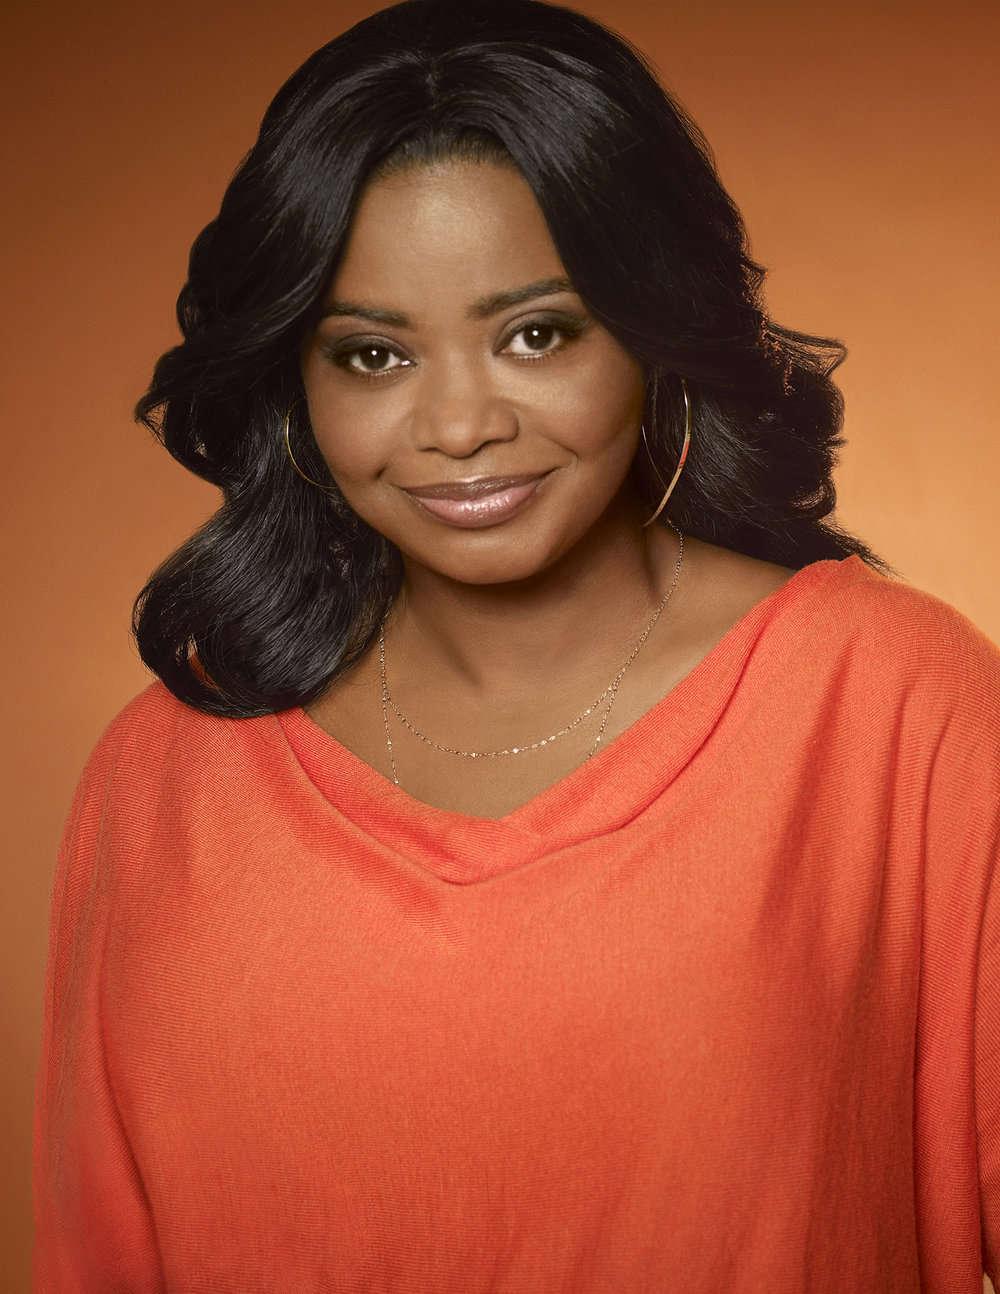 One of Hollywood's most sought-after talents,Octavia Spencer has become a familiar fixture on both television and the silver screen. Her critically acclaimed performance as Minny in 2011's The Help won her the Best Supporting Actress Academy Award, BAFTA Award, and Golden Globe Award, among numerous other accolades. Throughout the past year she has taken on many different characters, such as Johanna in Allegiant and Miss Harris in The Great Gilly Hopkins,as well as lending her voice to the character of Mrs. Otterton in Zootopia.Octavia can currently be seen in the critically acclaimed Hidden Figures, a drama that follows the true story of three African American women who were instrumental to NASA catching up in the Space Race.Octavia's performance as Dorothy Vaughan has earned her SAG, Golden Globe and NAACP Image Award nominations to date.Up next,Spencer will star in The Shack and Gifted